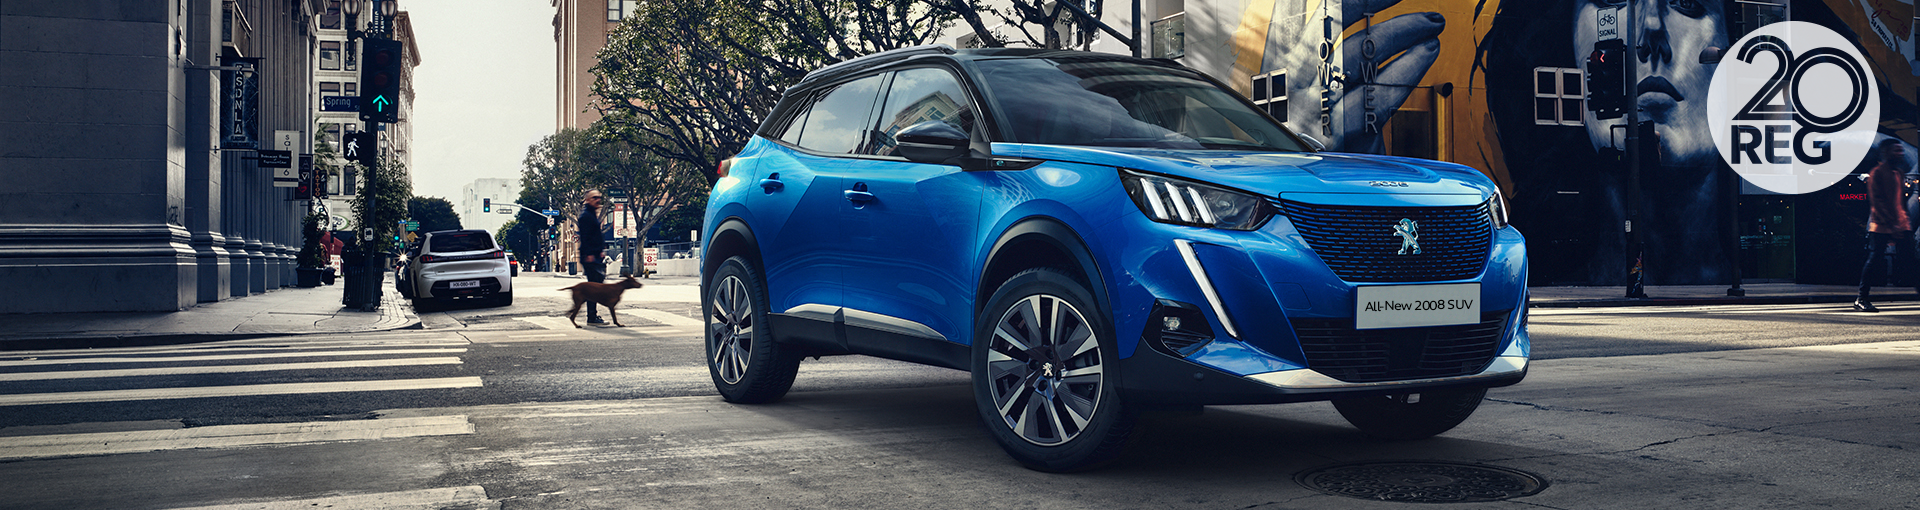 ALL-NEW Peugeot 2008 SUV - 20 Plate